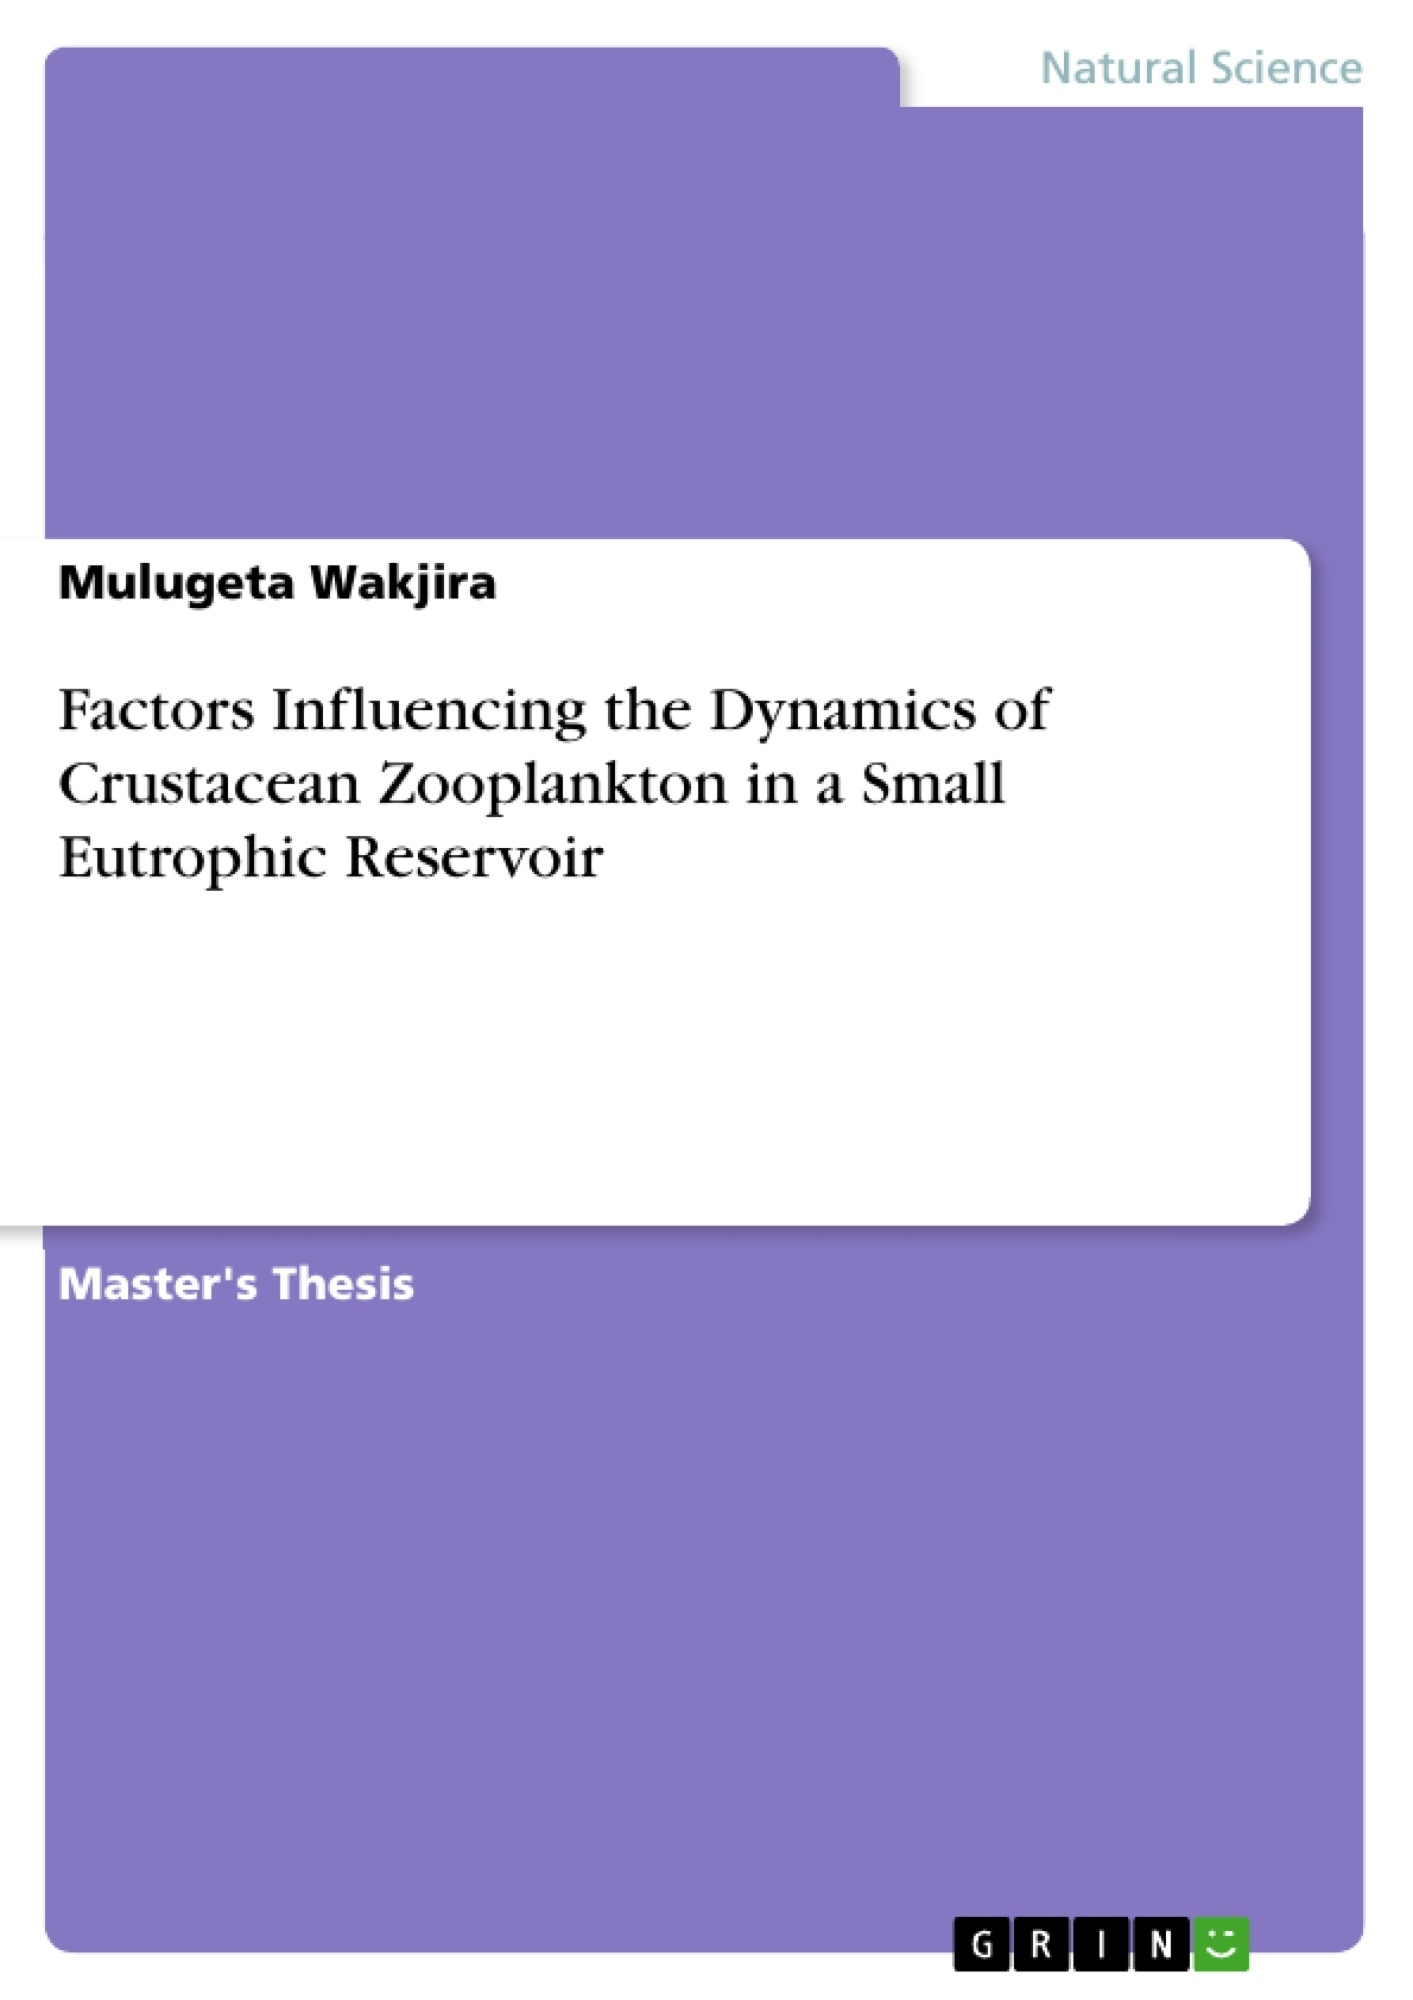 Title: Factors Influencing the Dynamics of Crustacean Zooplankton in a Small Eutrophic Reservoir